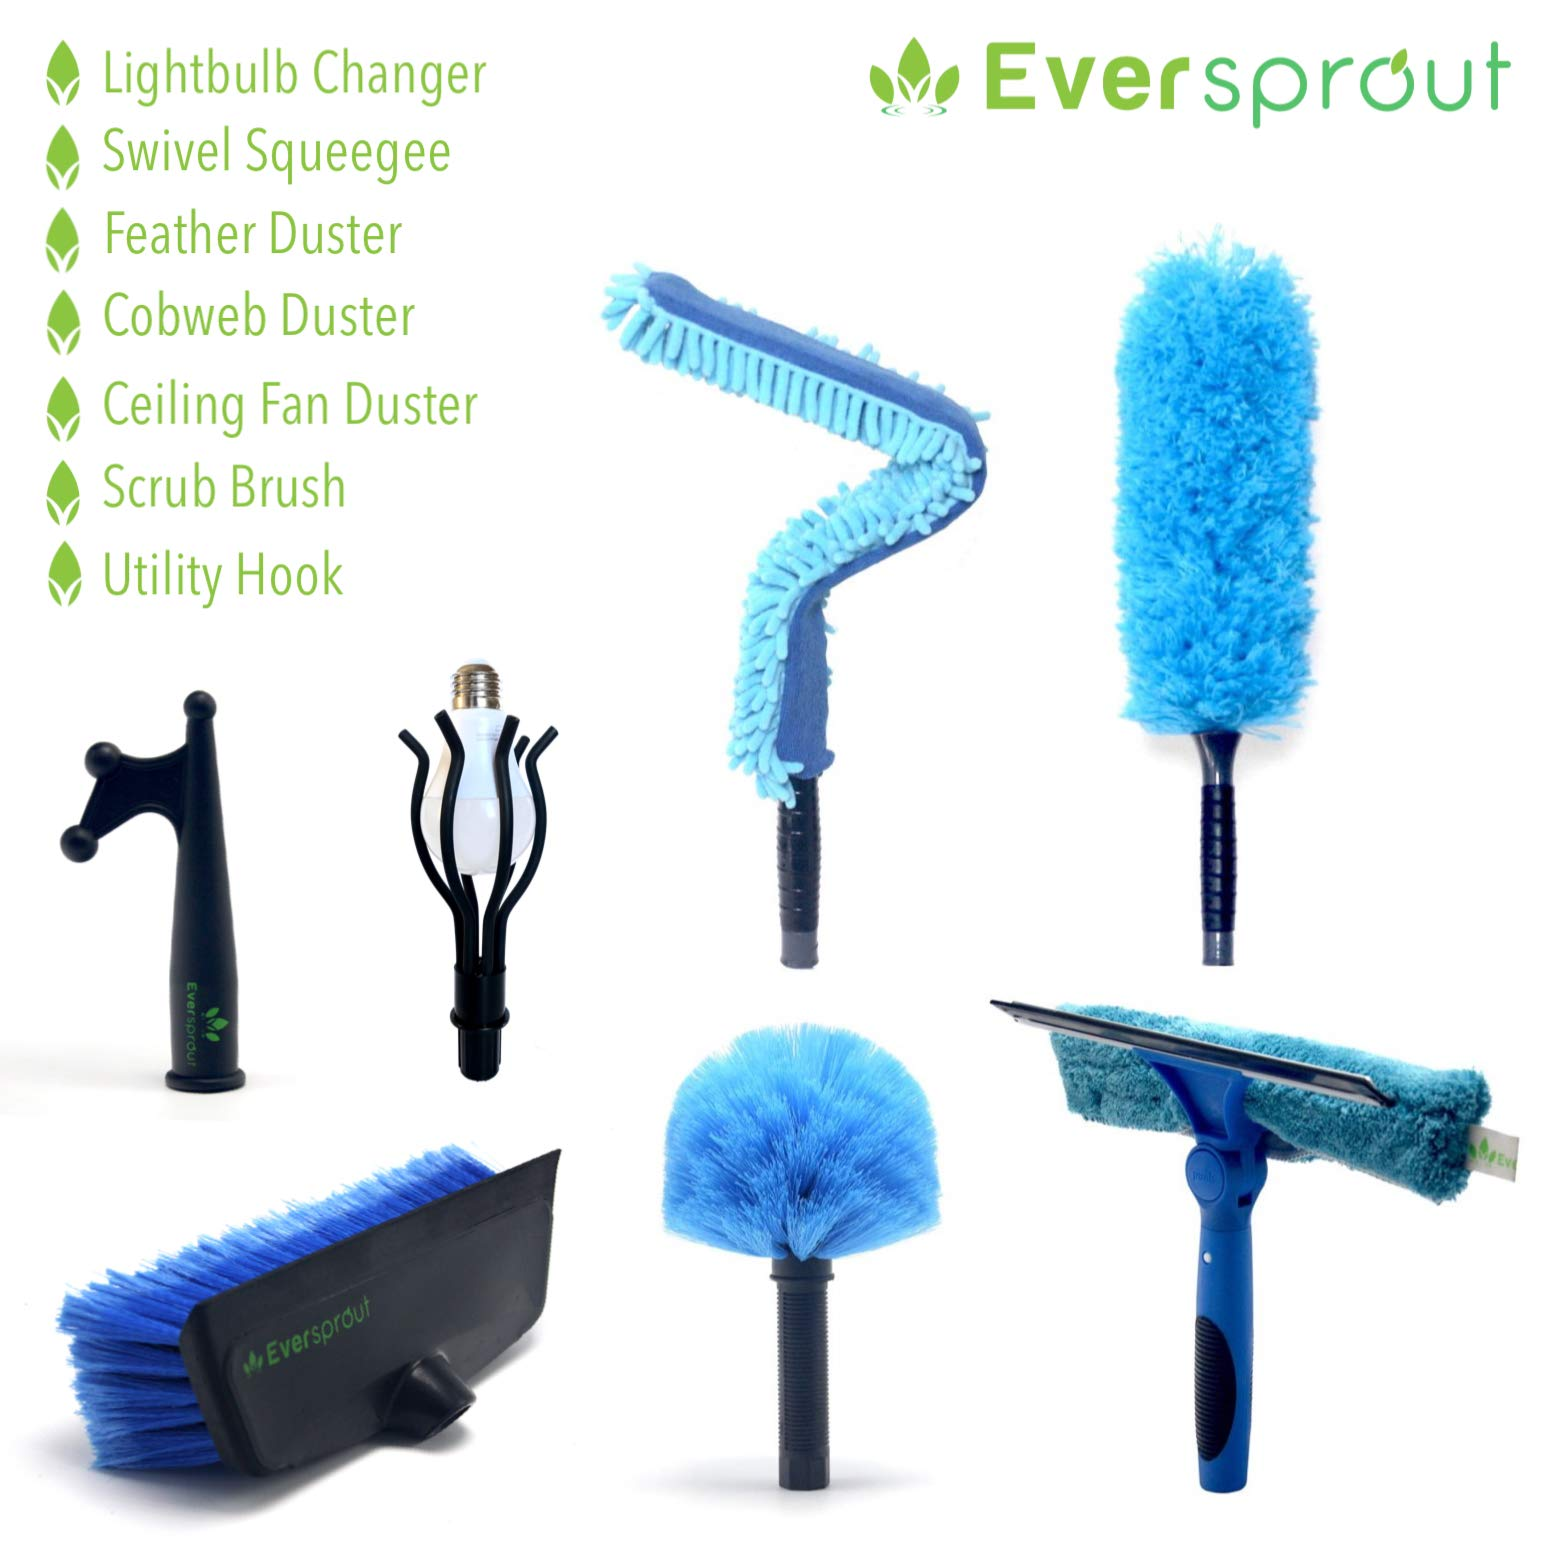 EVERSPROUT Total Kit | Scrub Brush, Light Bulb Changer, Utility Hook, Swivel Squeegee, 3X Microfiber Duster Head Attachments (Cobweb, Flexible Ceiling Fan, Feather) by EVERSPROUT